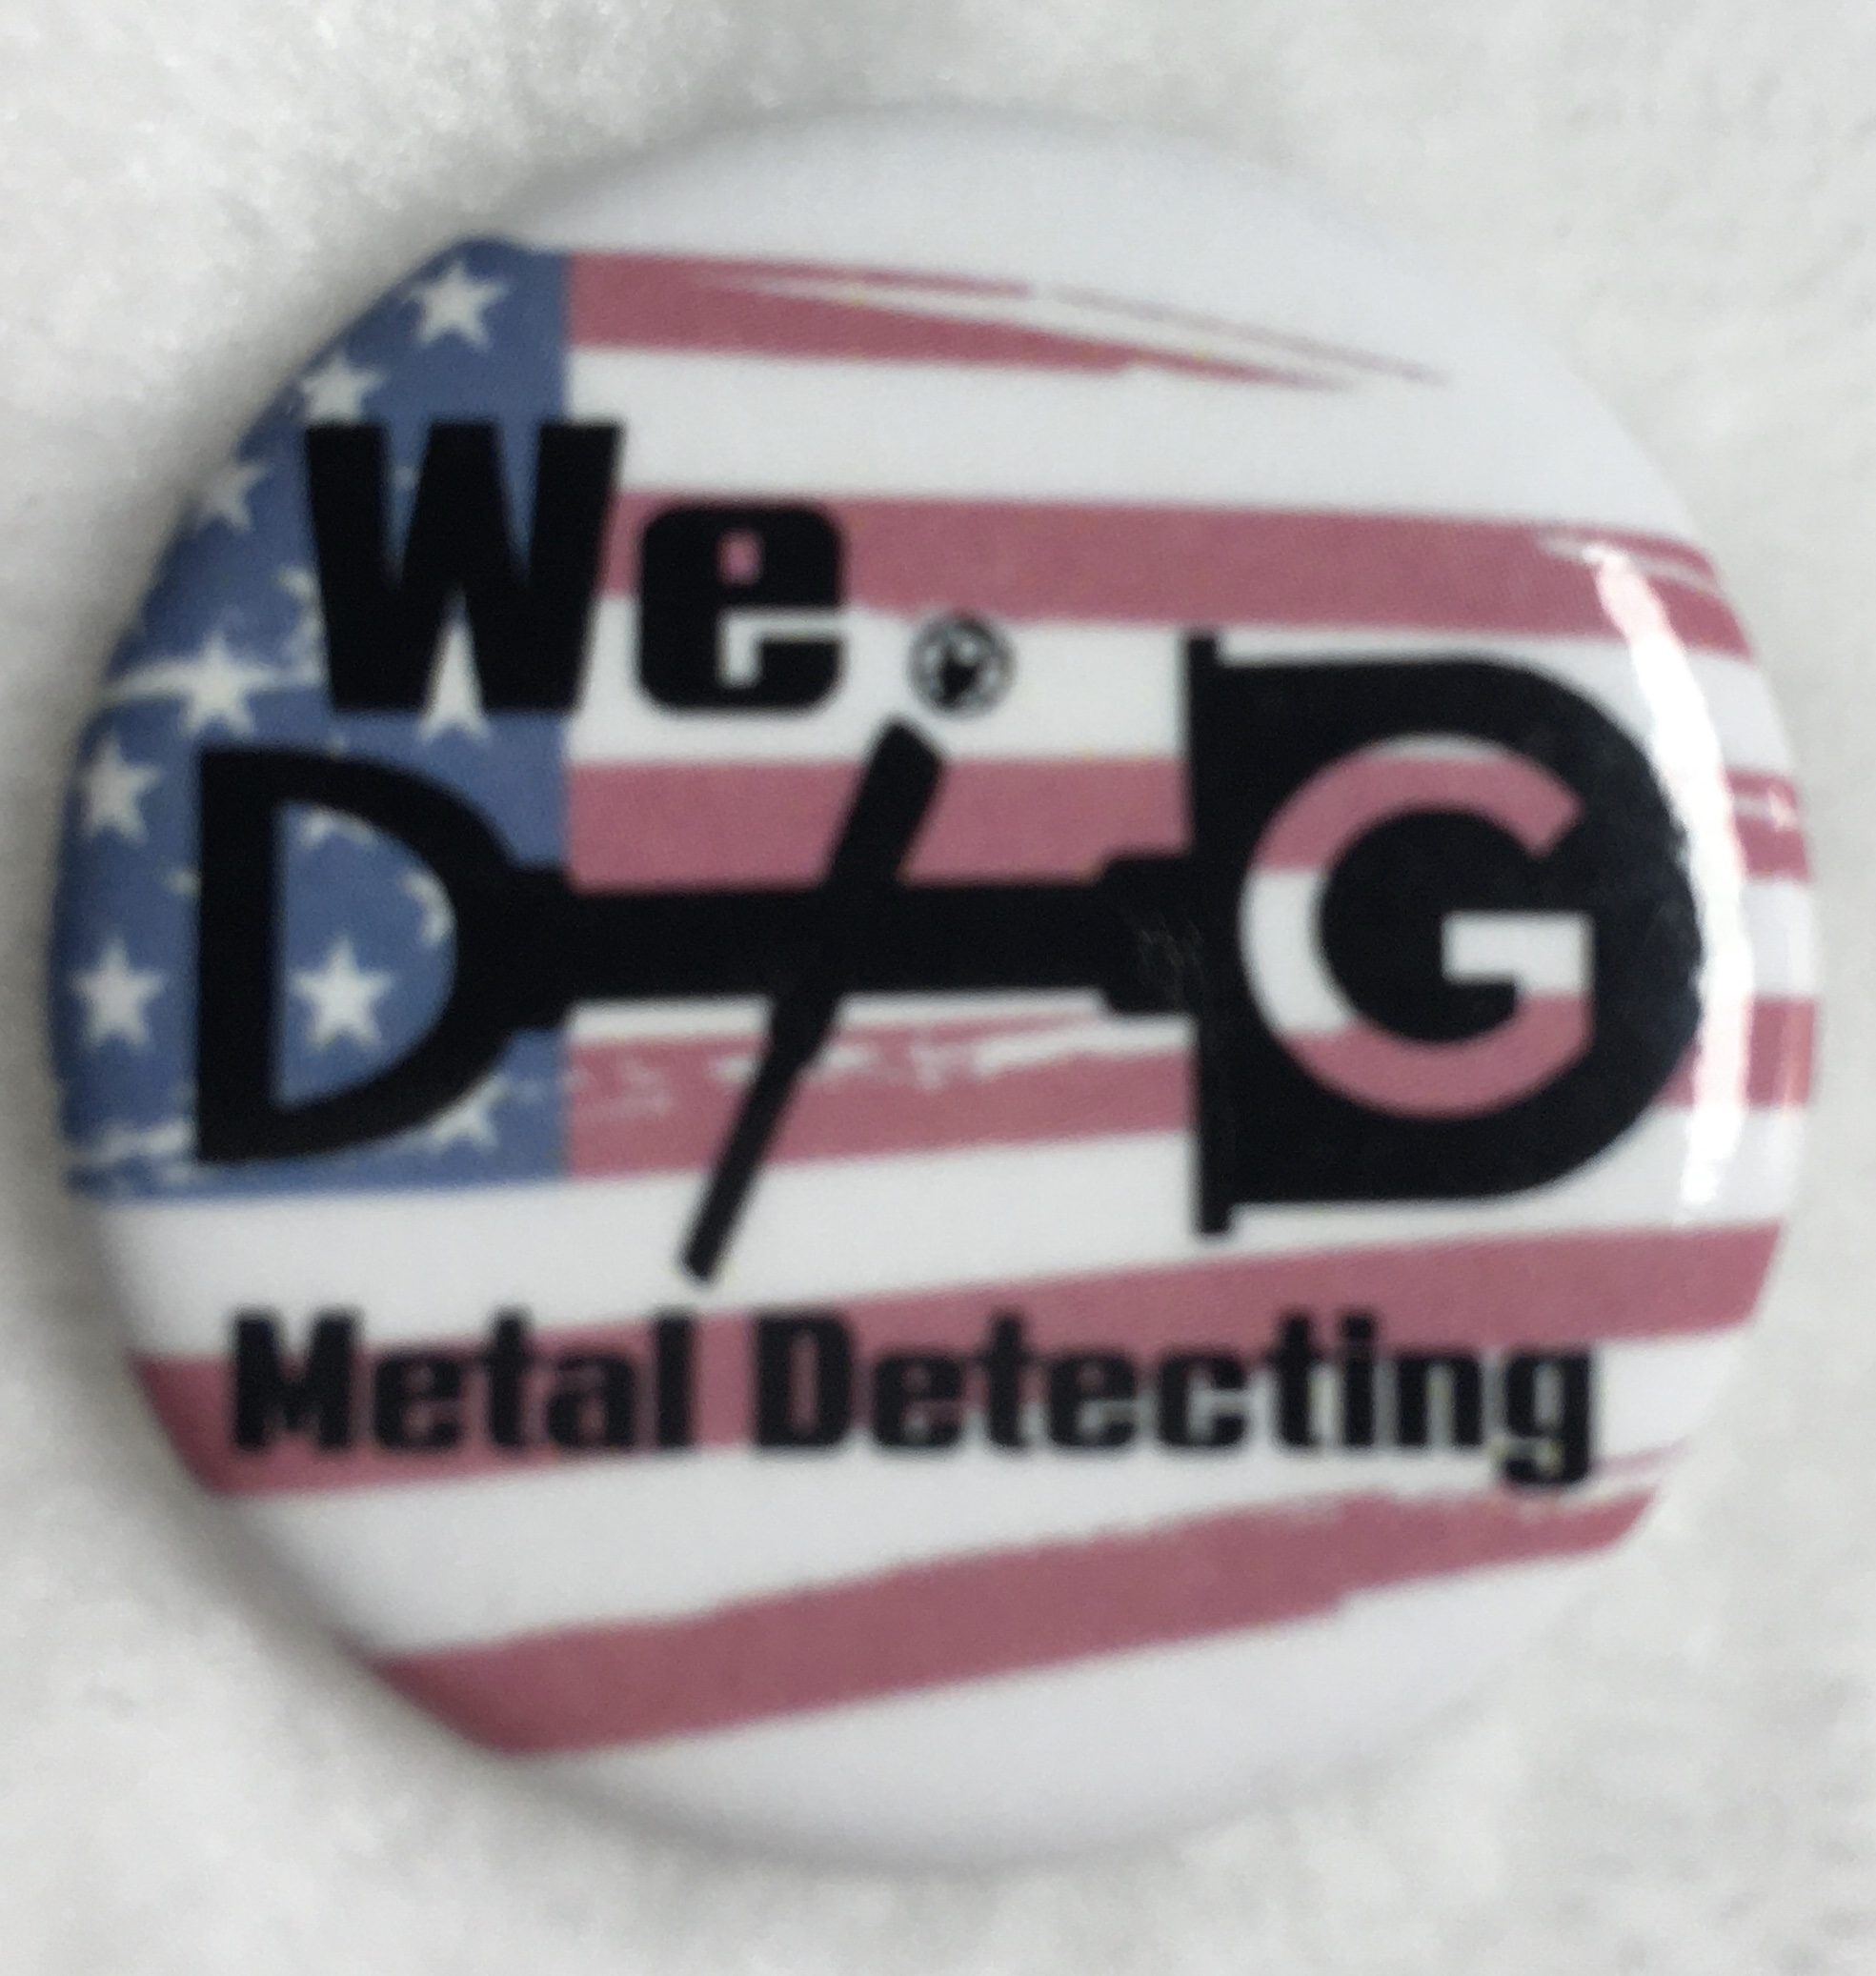 We Dig Metal Detecting 1